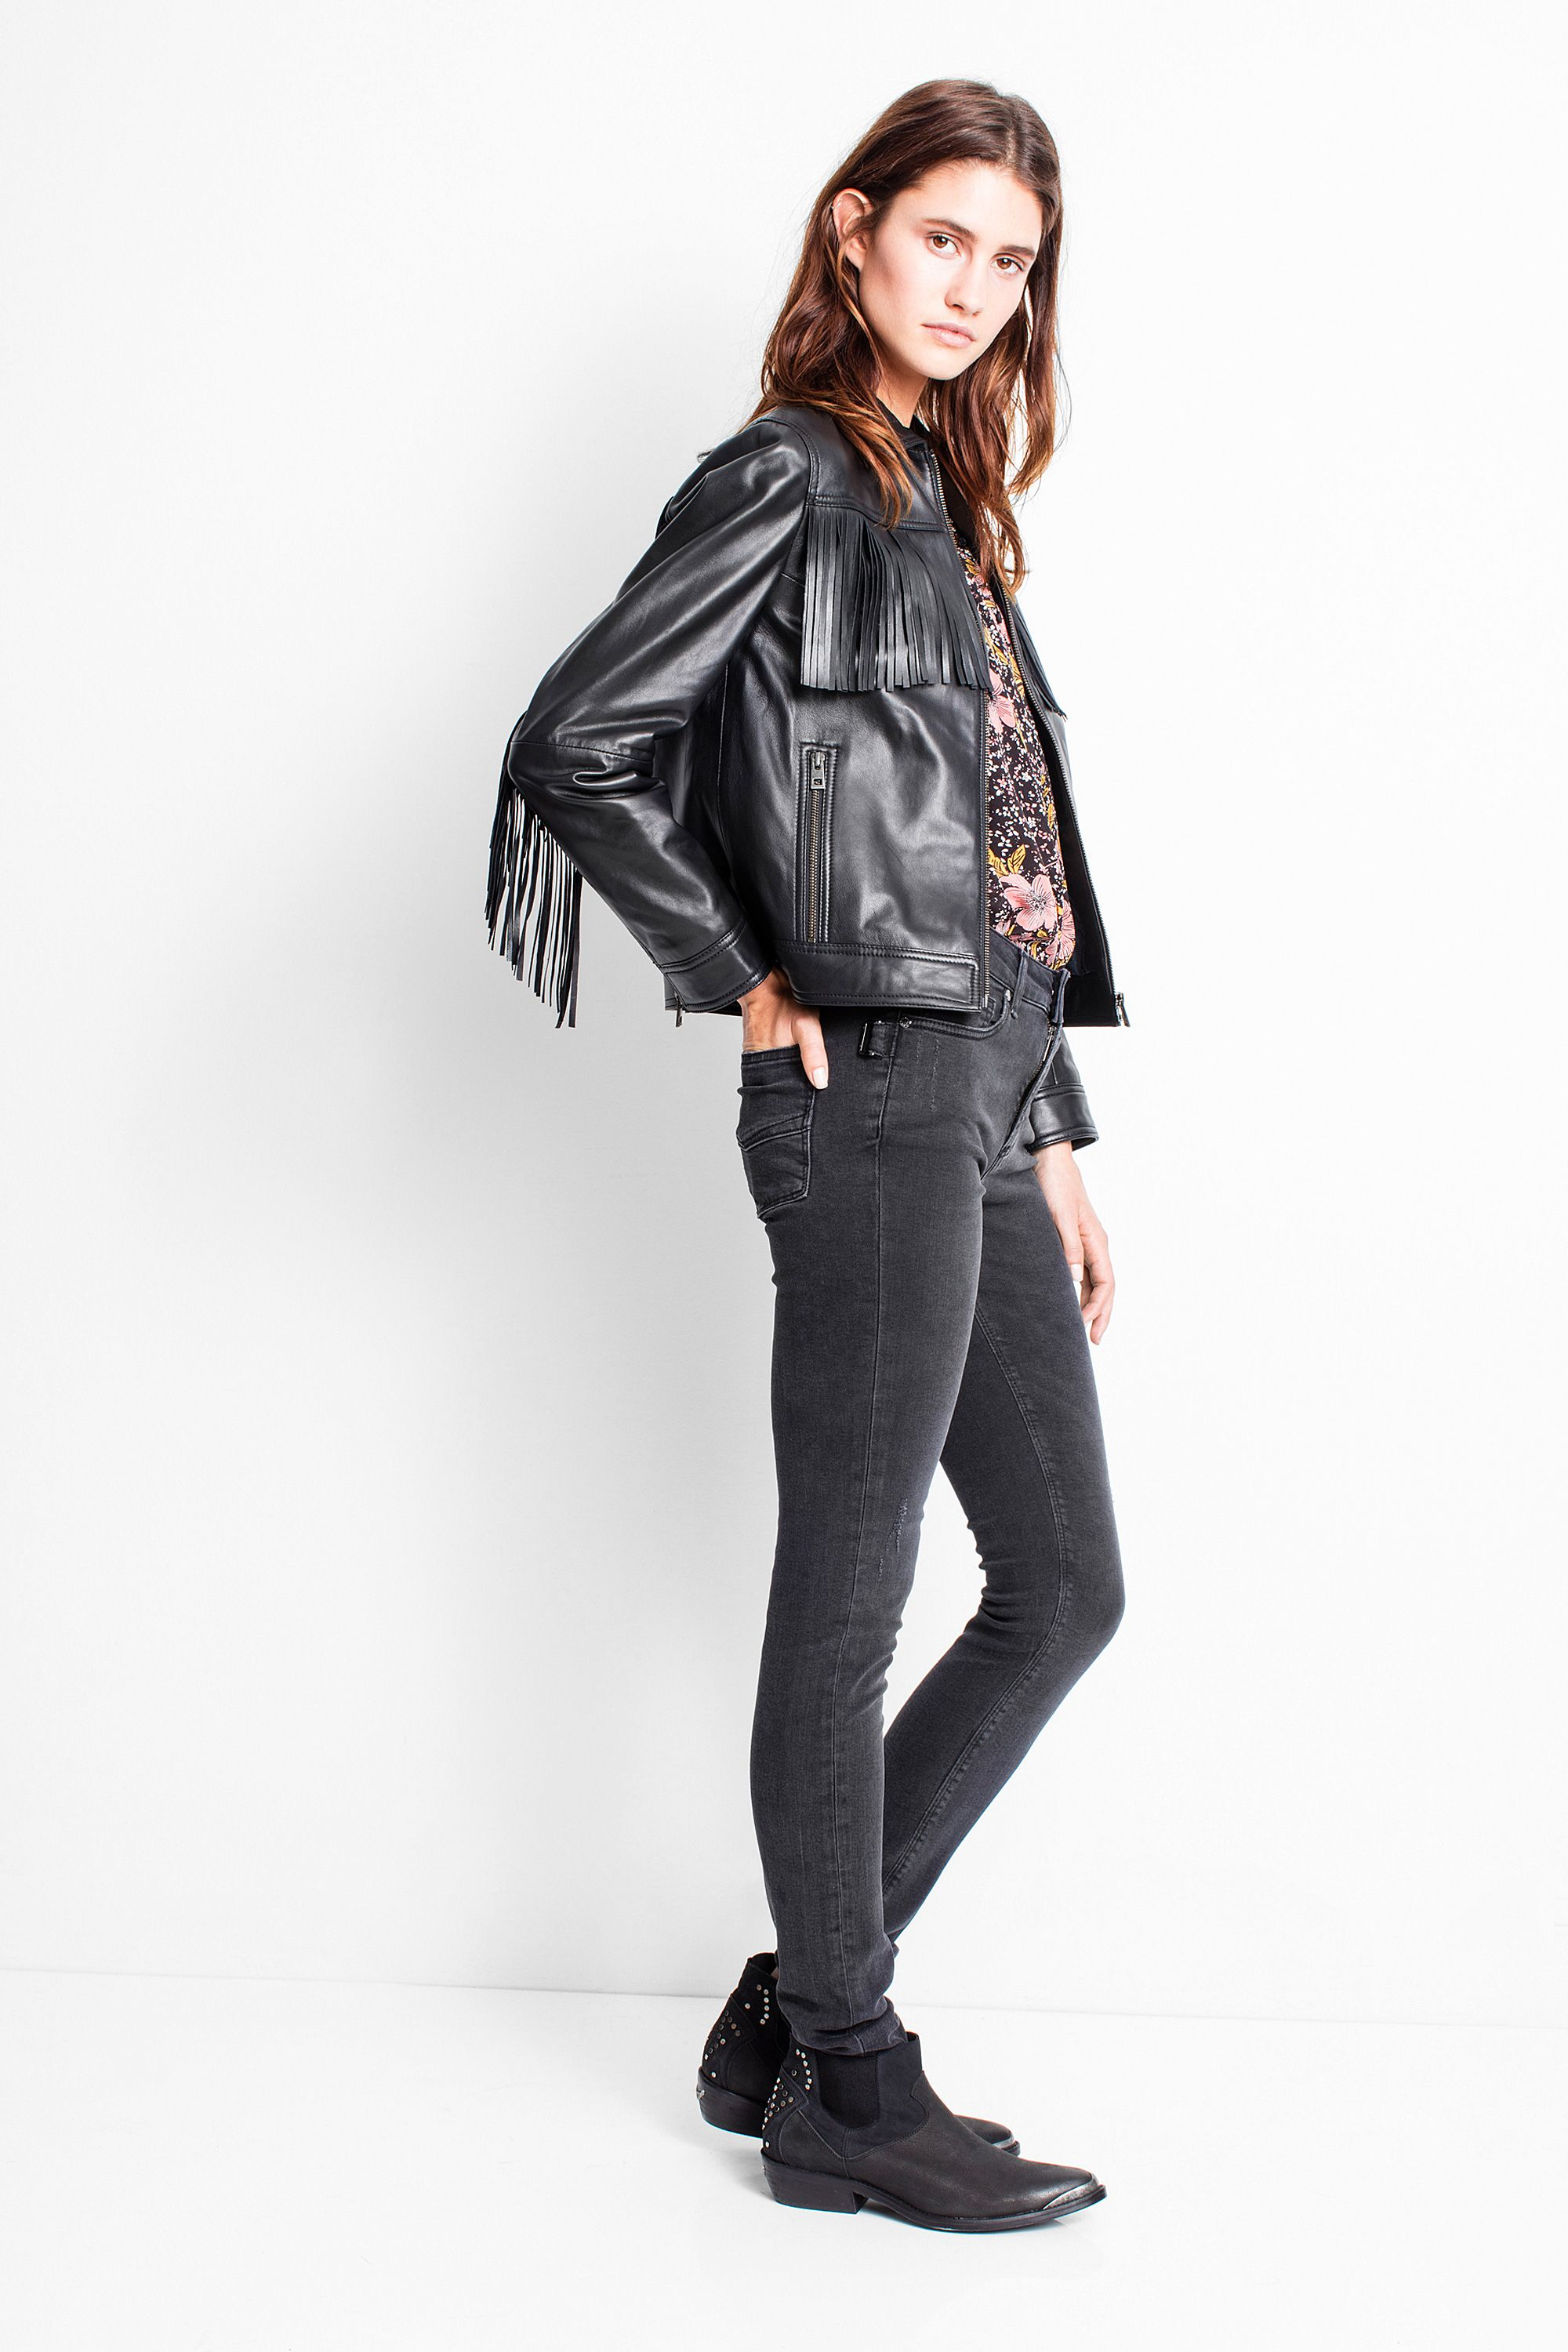 Pin by Siobhán Norton on Fashion Jackets, Fringe leather